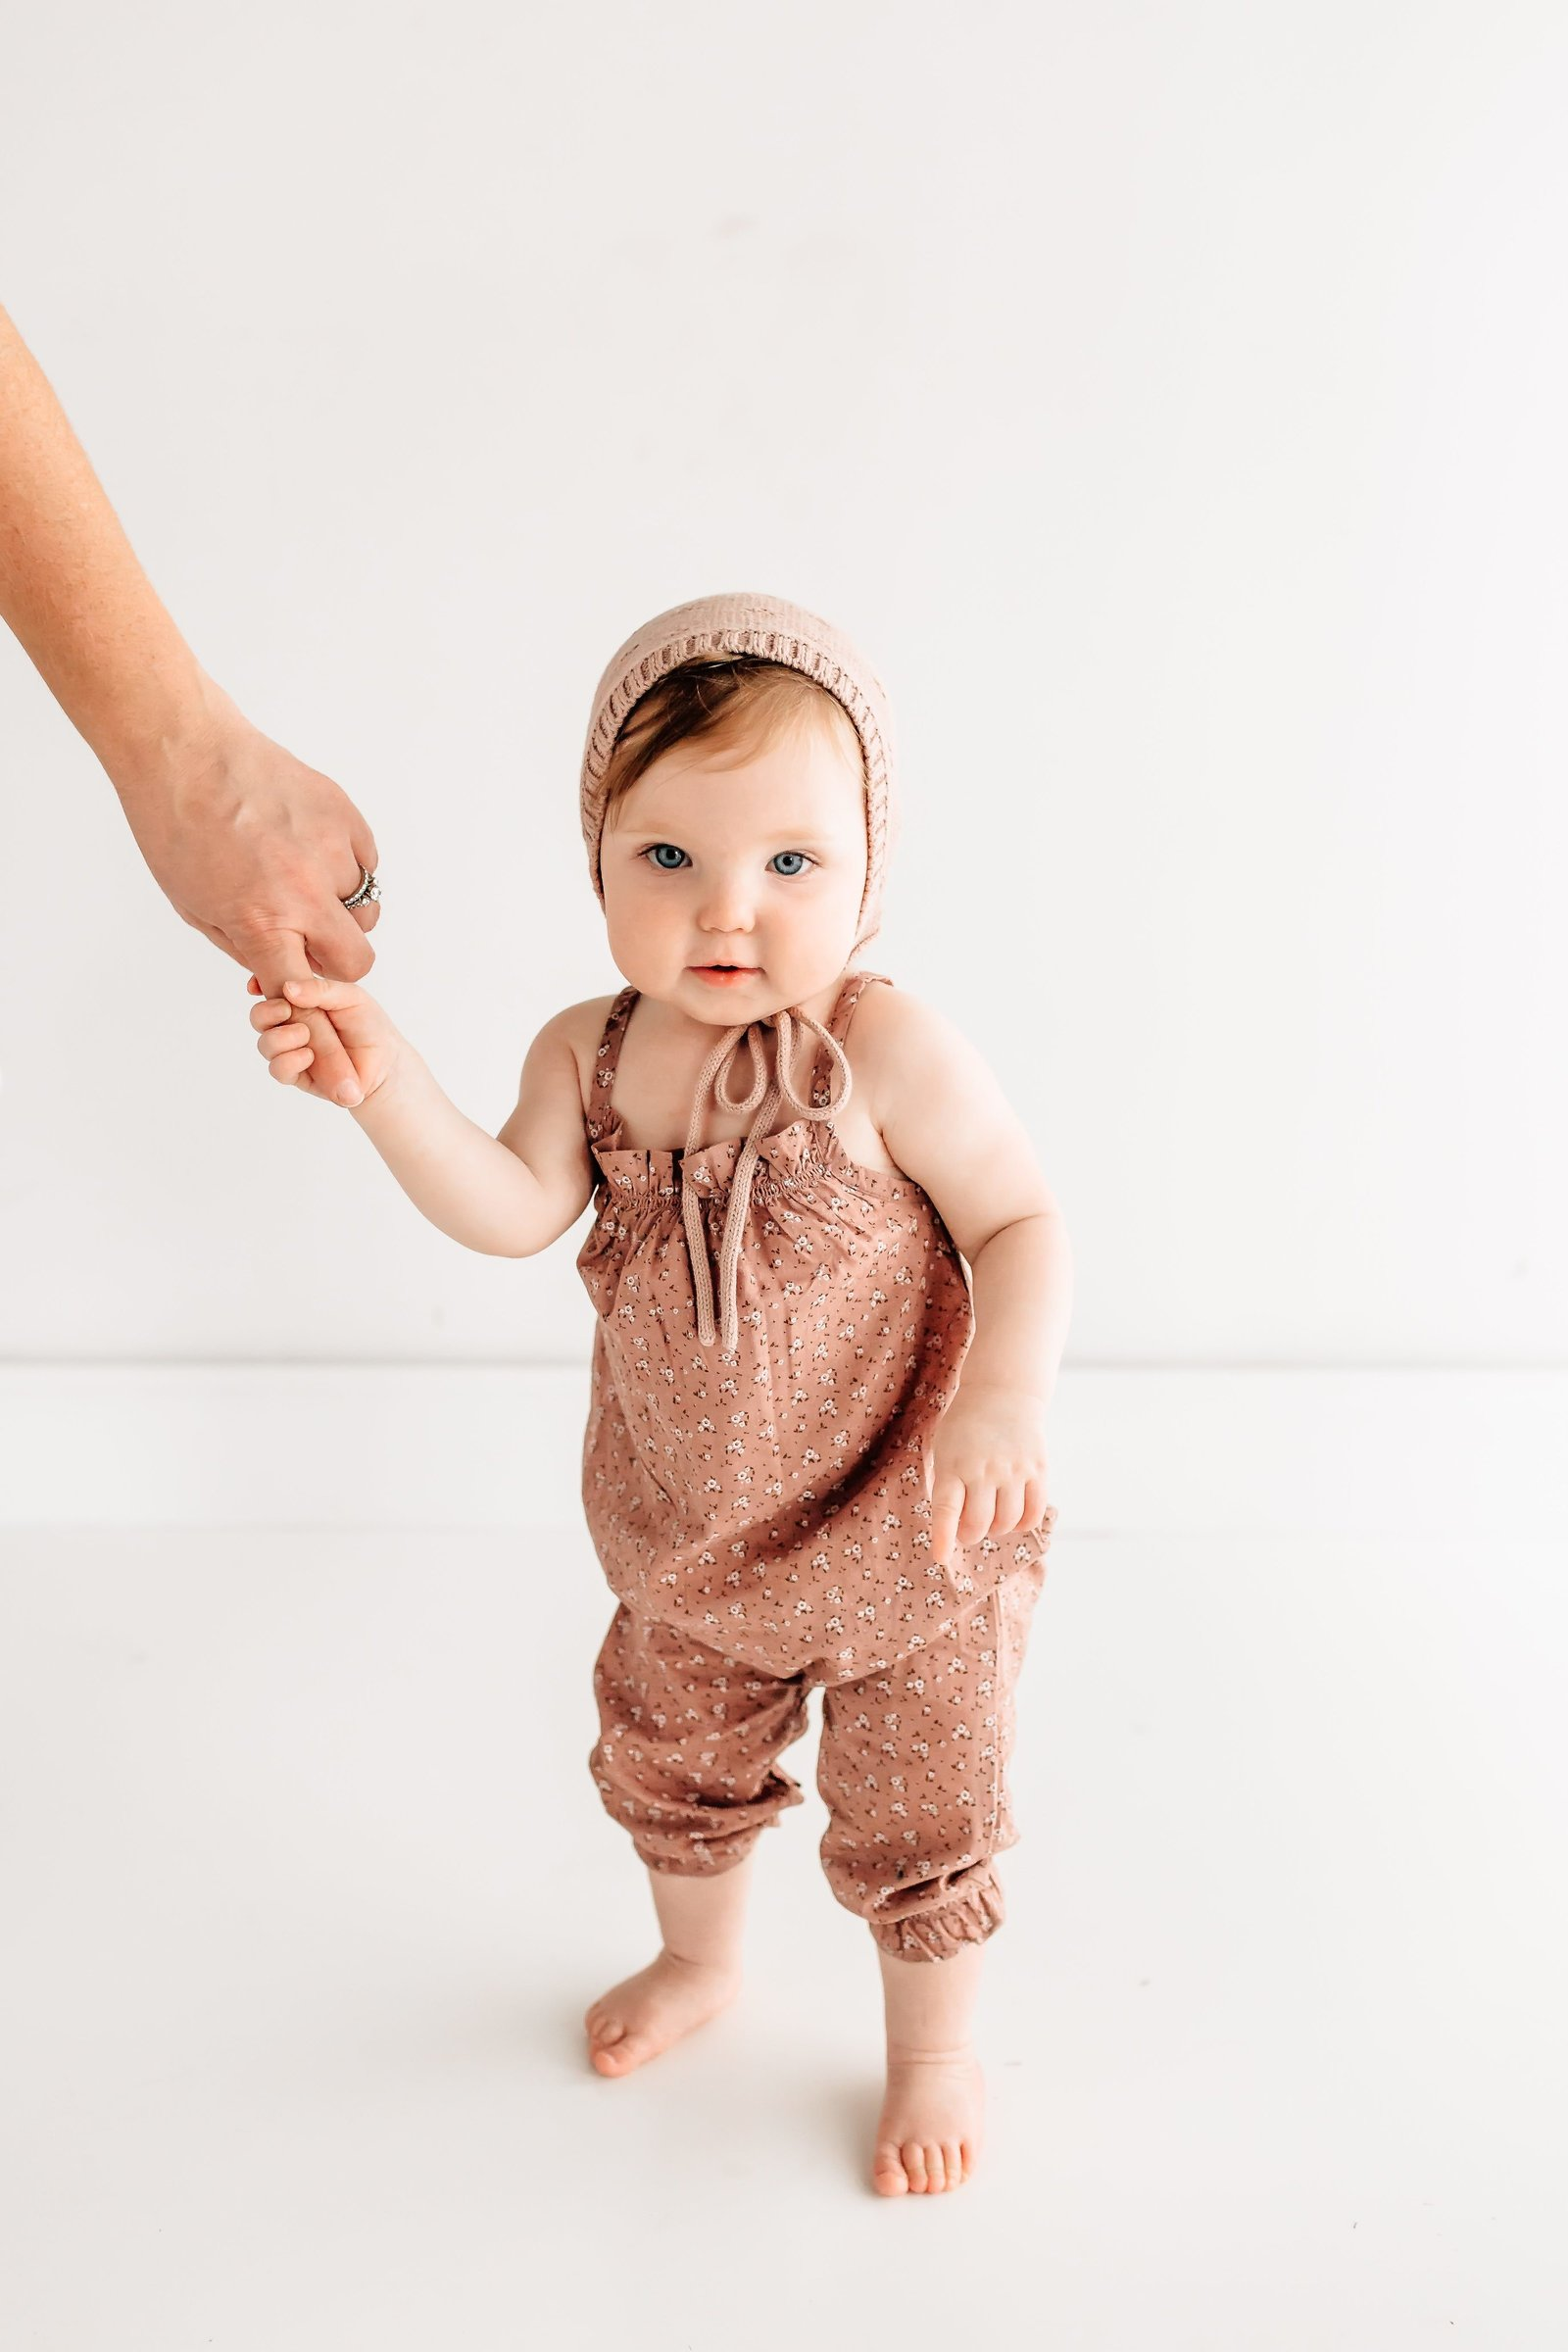 St_Louis_Baby_Photographer_Kelly_Laramore_Photography_55